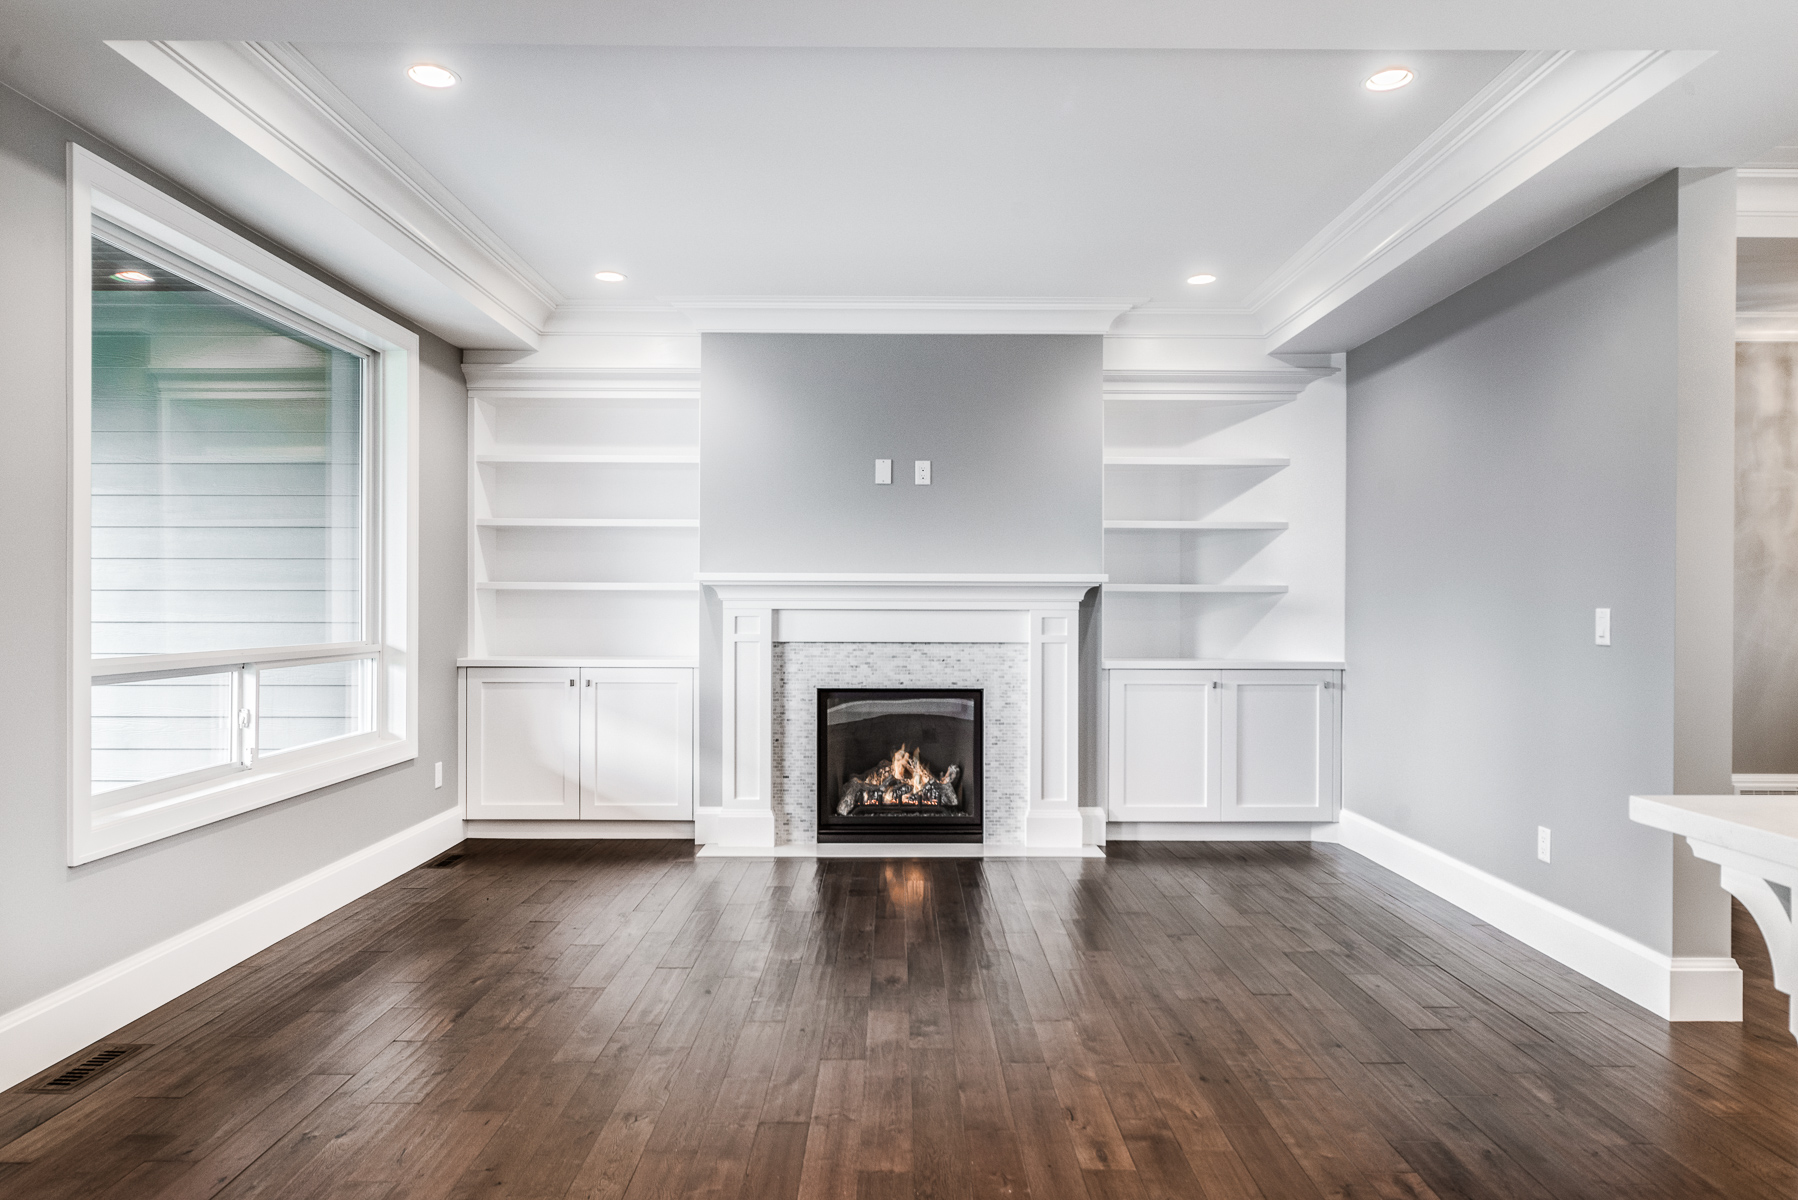 15592-Madrona-Dr-Sry-360hometours-14s.jpg